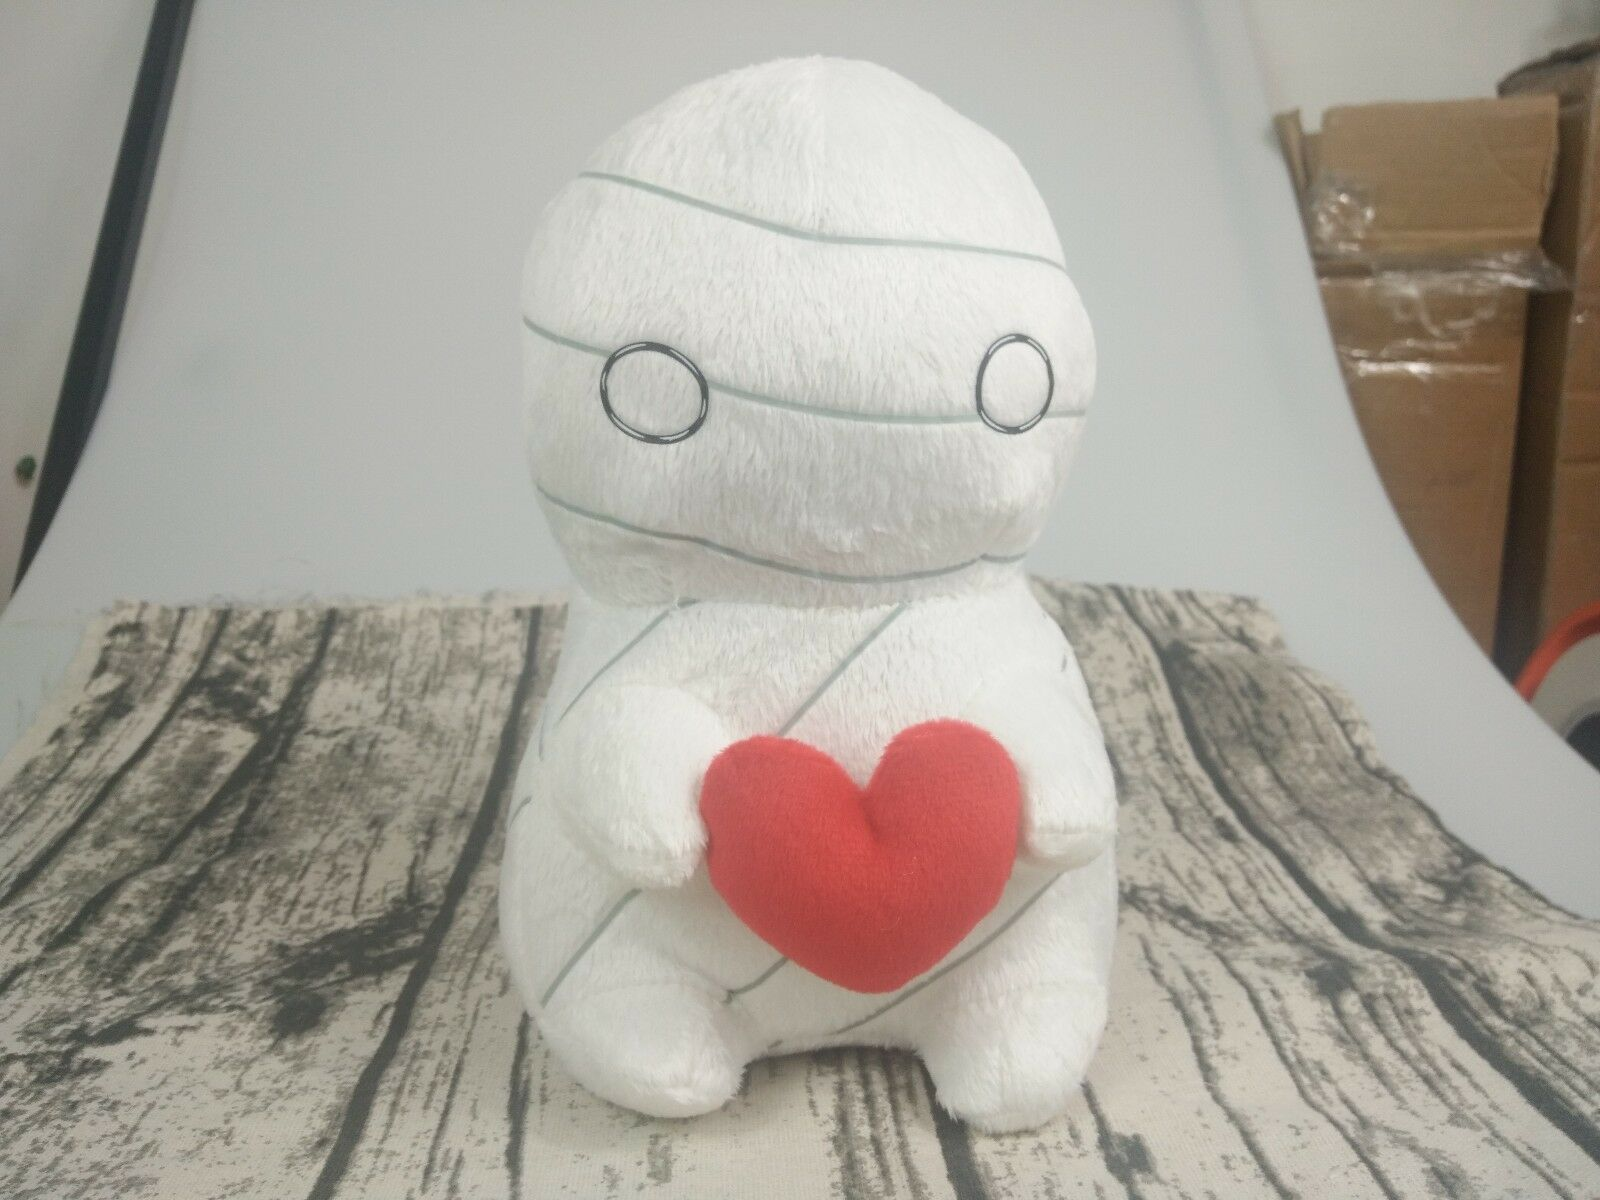 Miira No Kaikata Mii Kun How To Keep A Mummy Doll Toy Gift Plush